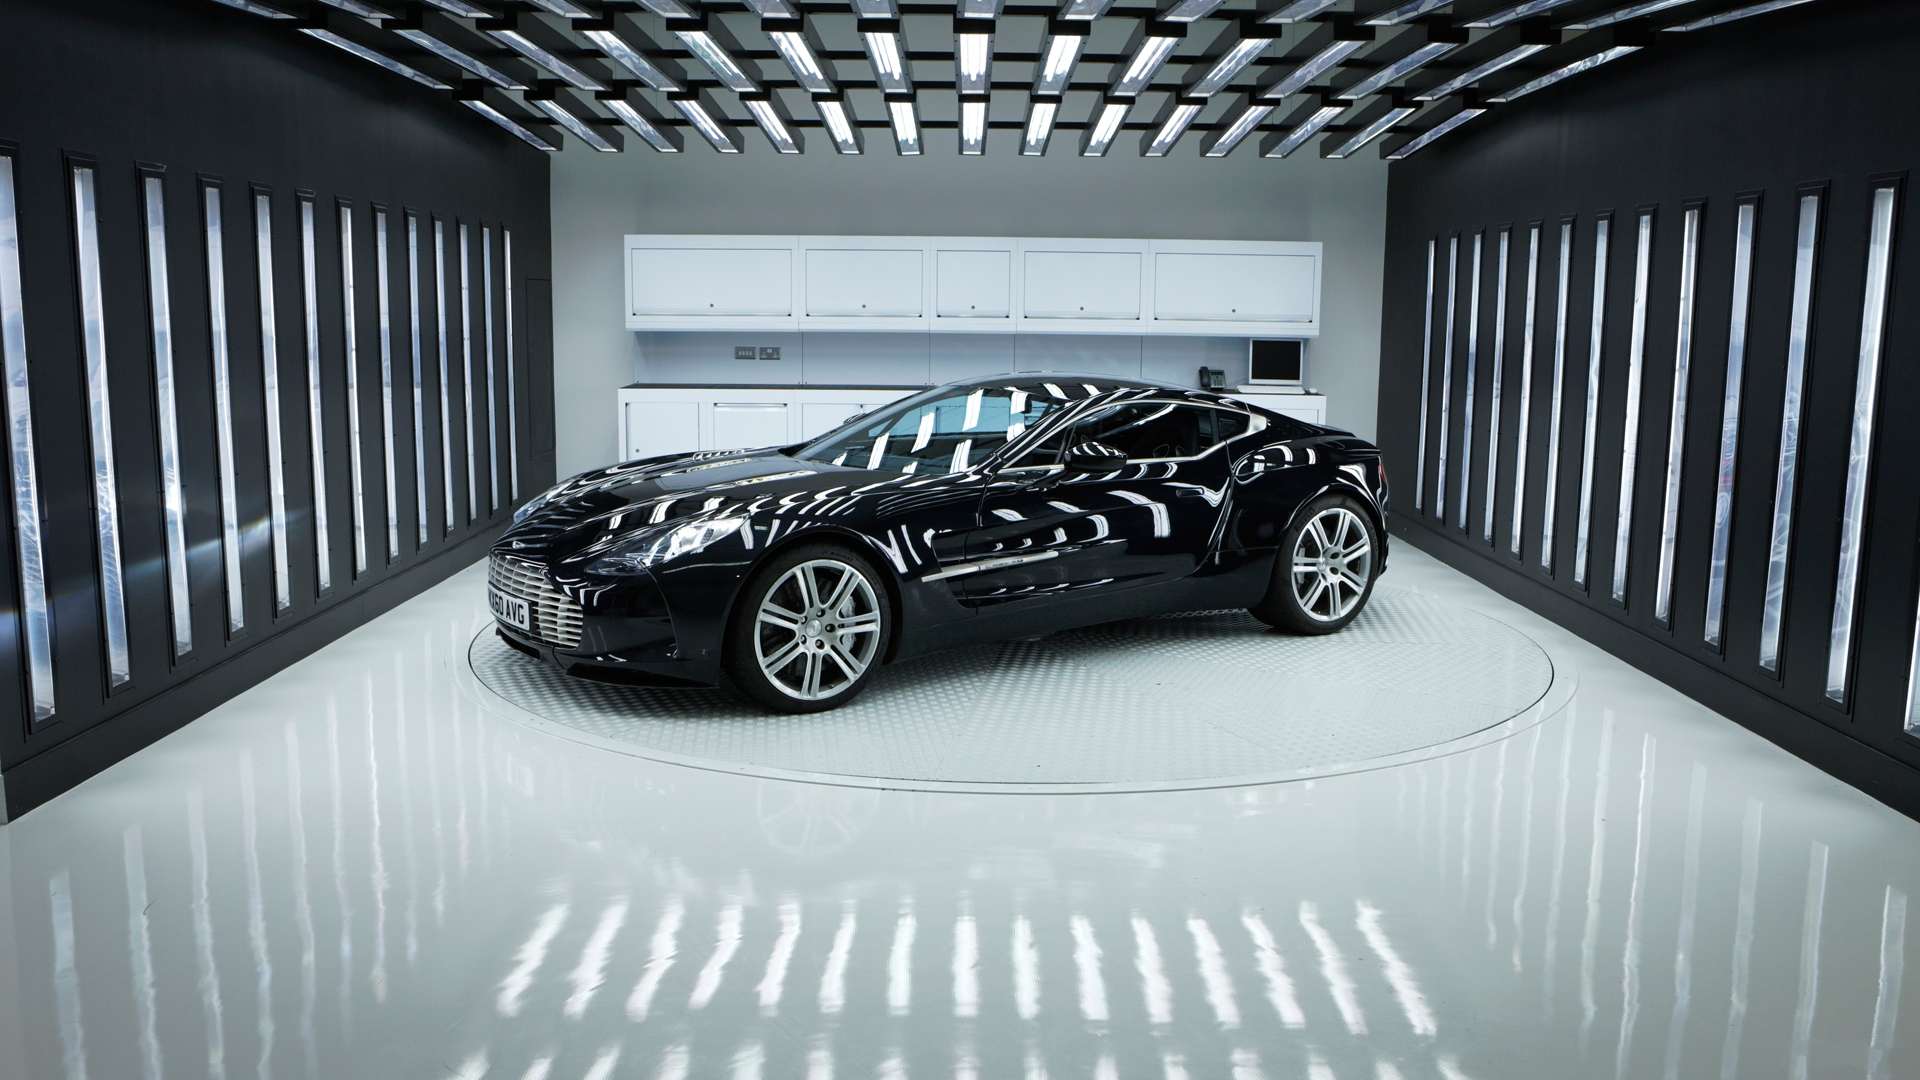 aston martin one 77 hd wallpaper. Cars Review. Best American Auto & Cars Review